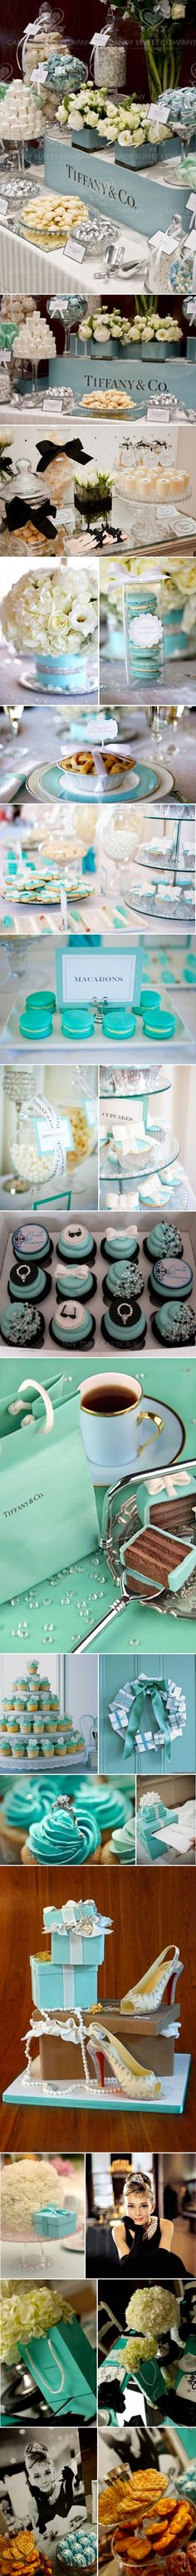 Tiffany & Co. Party idea :)